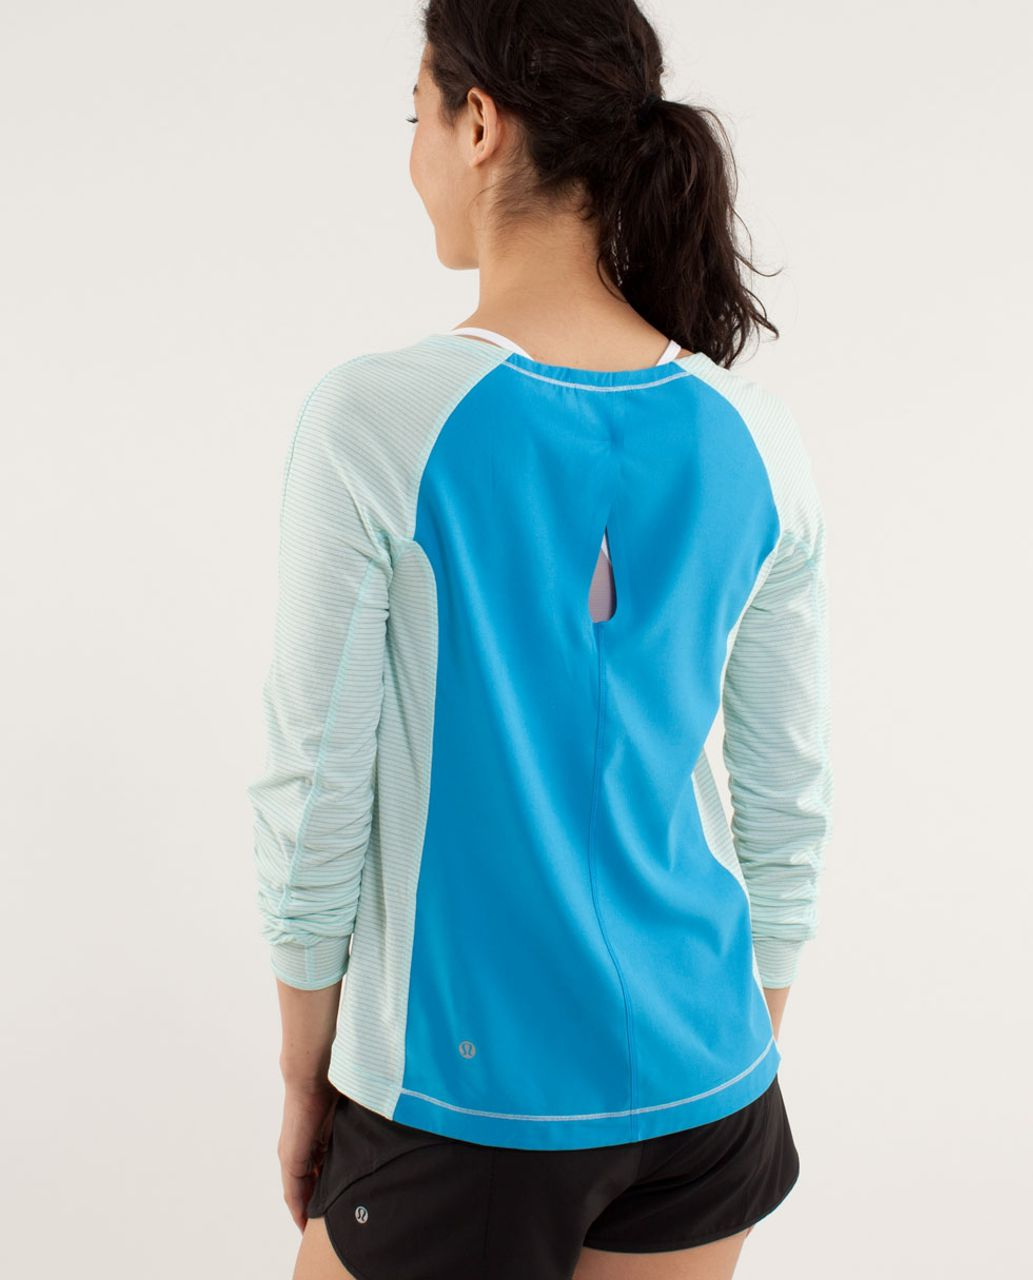 Lululemon Run:  Silver Lining Long Sleeve - Aquamarine / Beach Blanket Blue